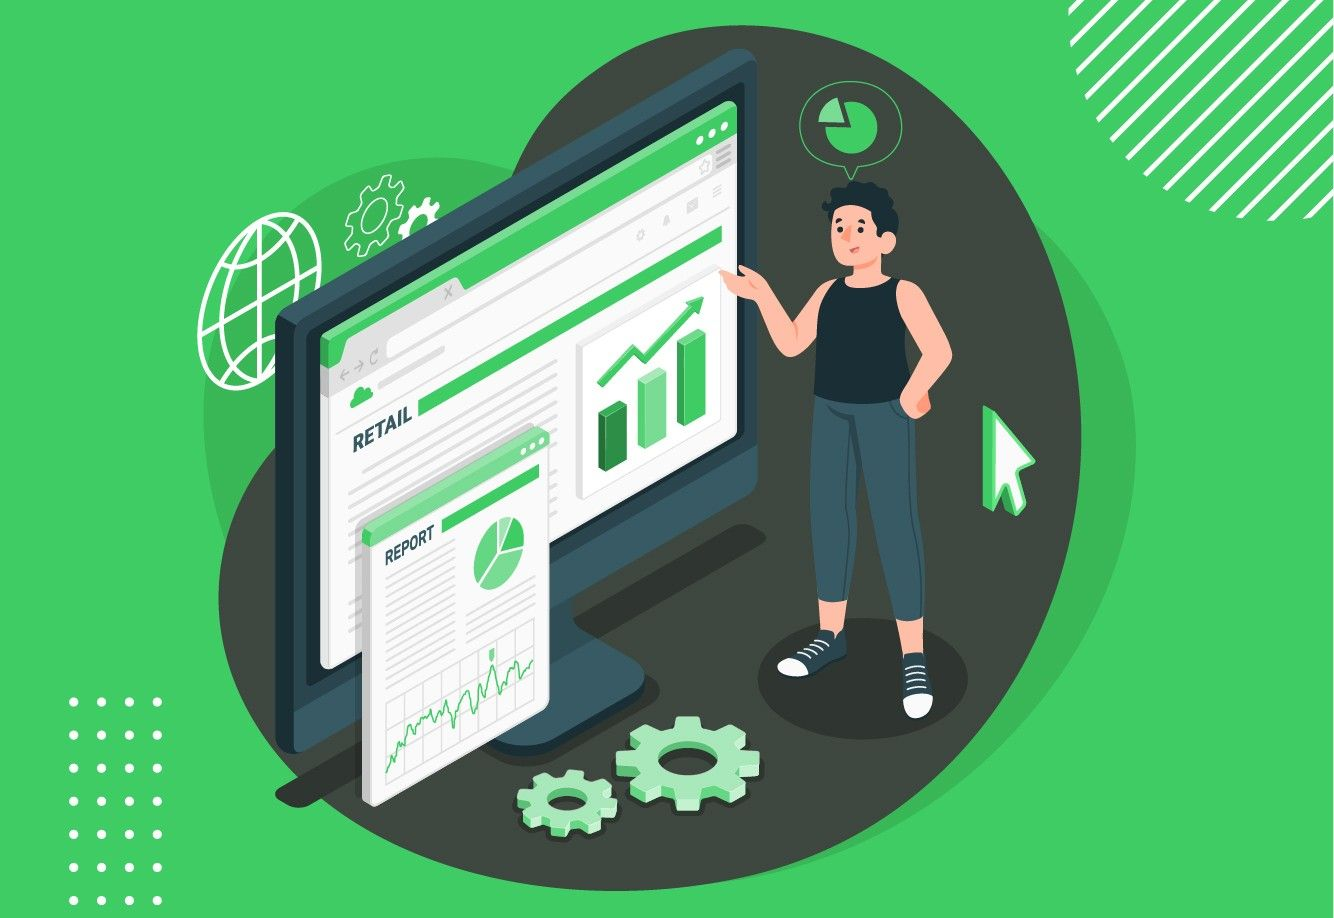 How to Create Analytics Software for Retail to Win More Clients